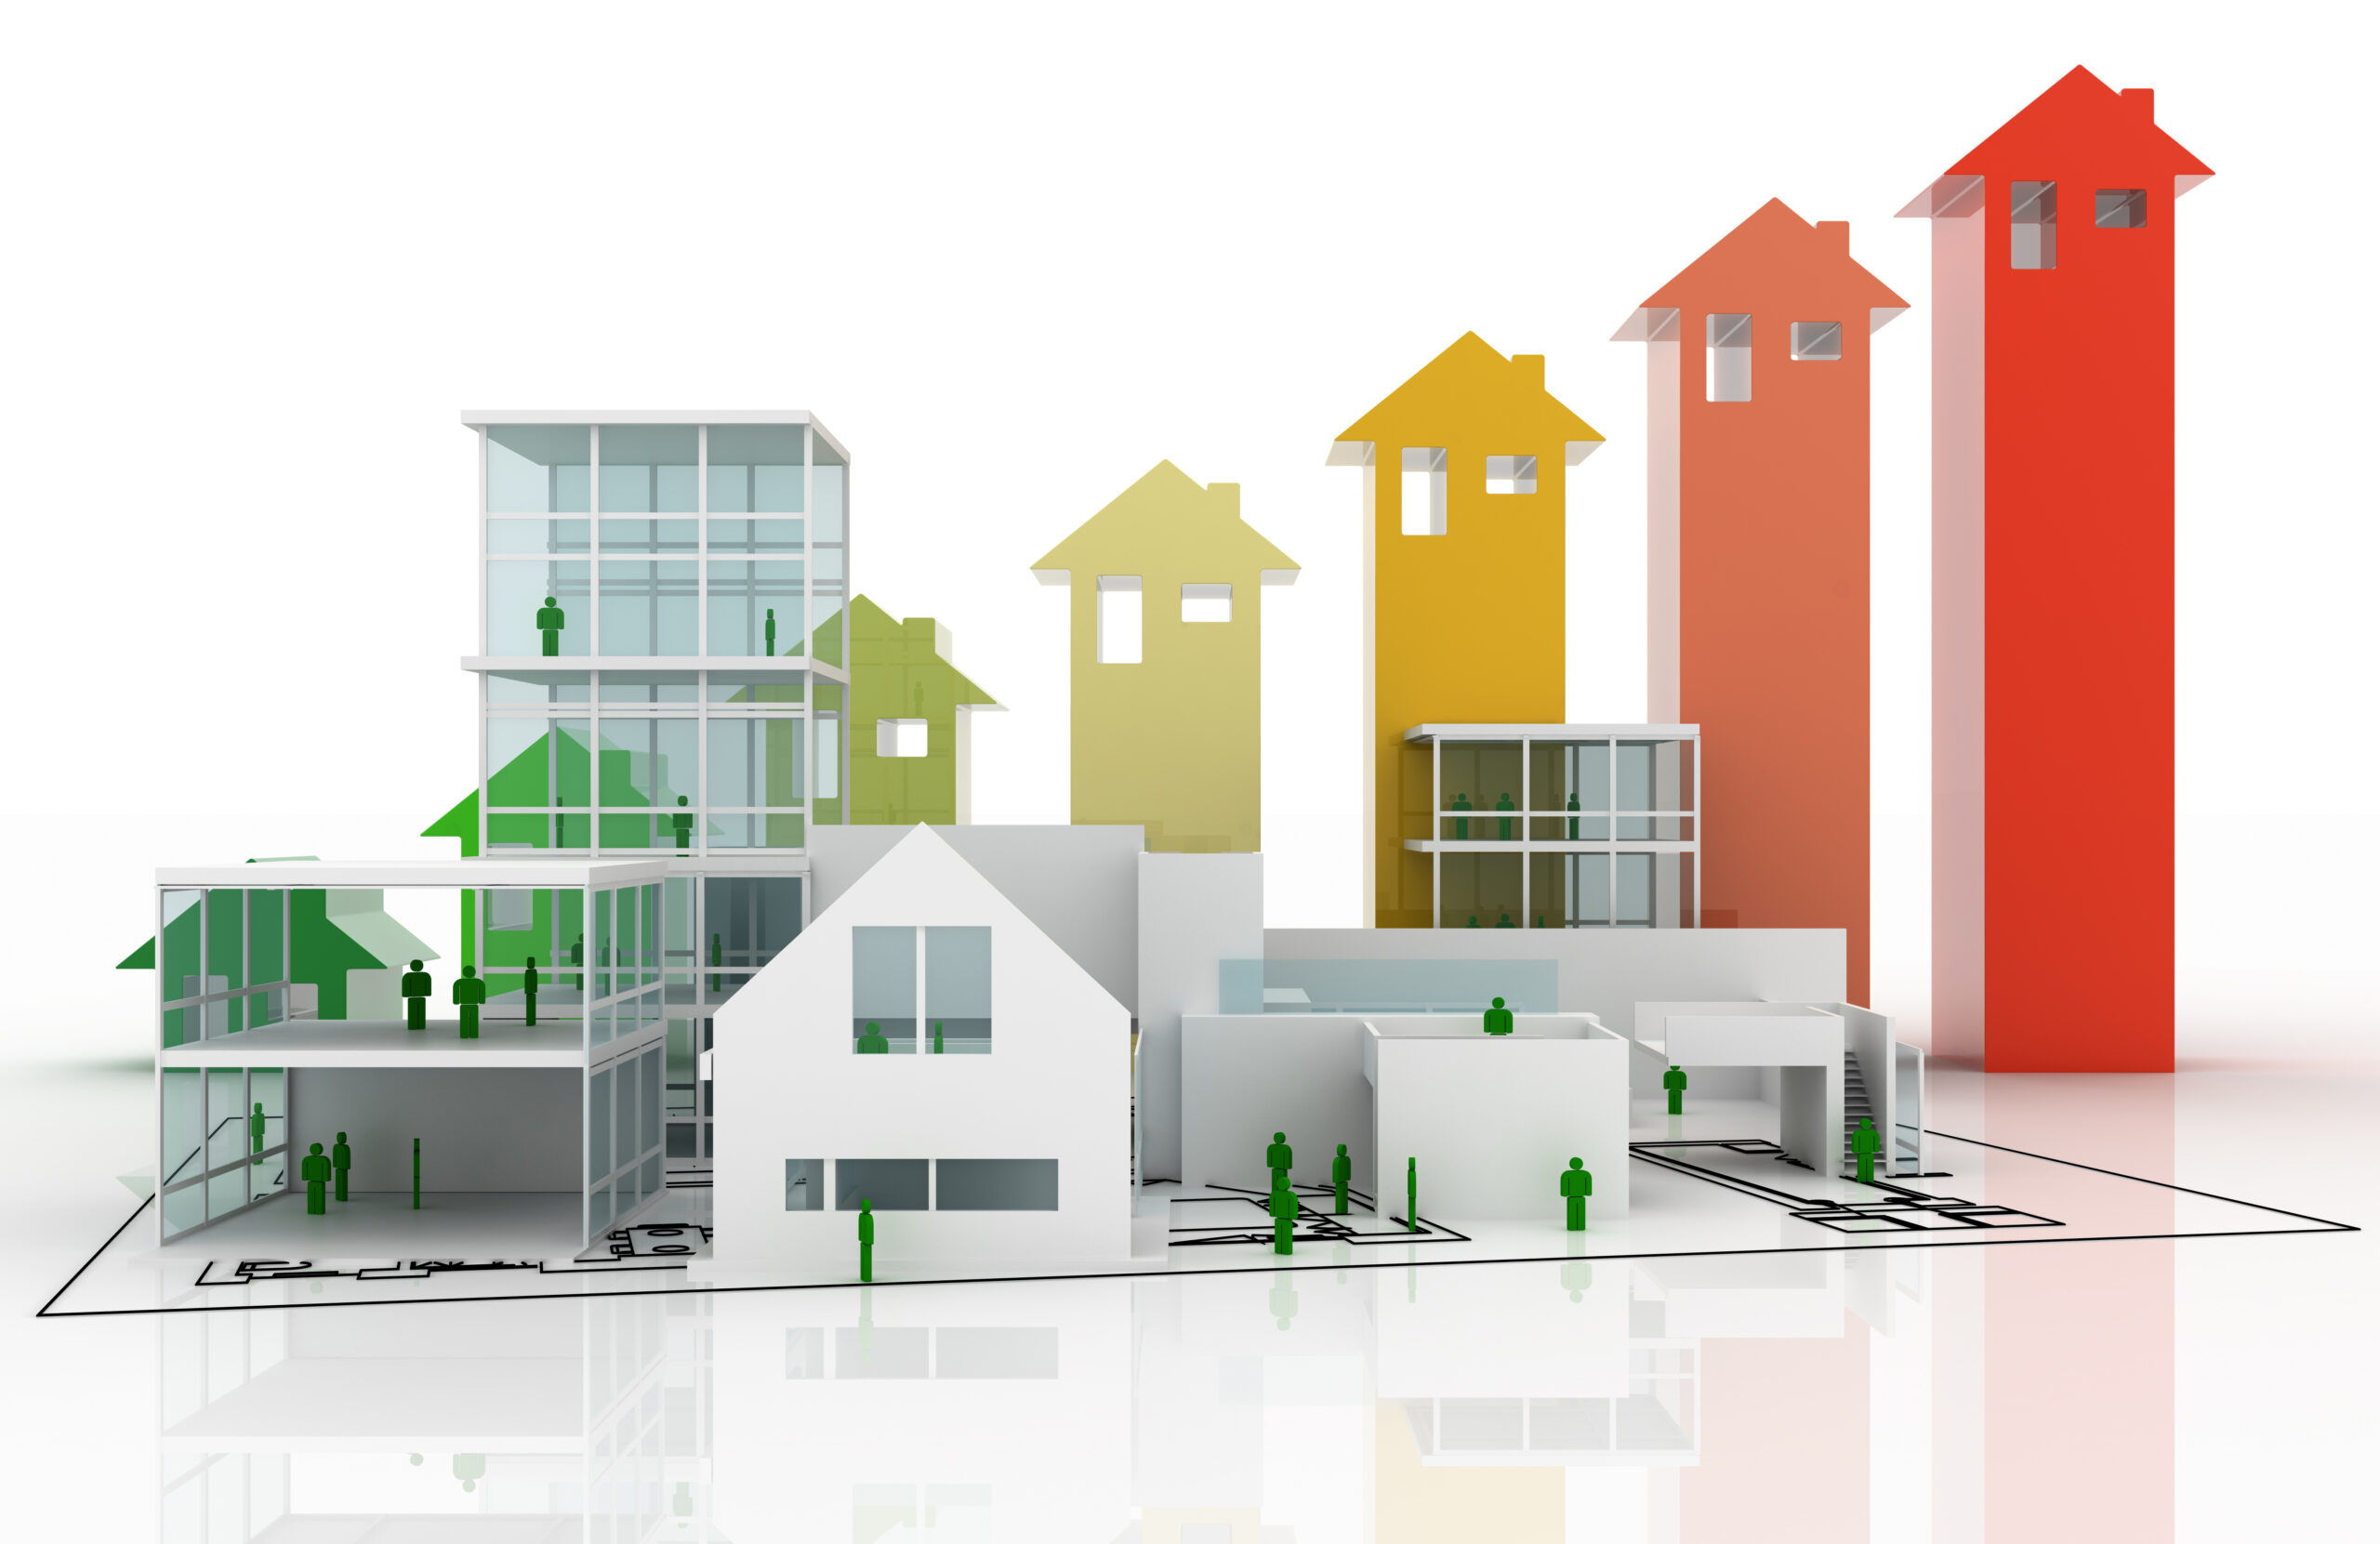 MDfx optimising building automation for great ROI